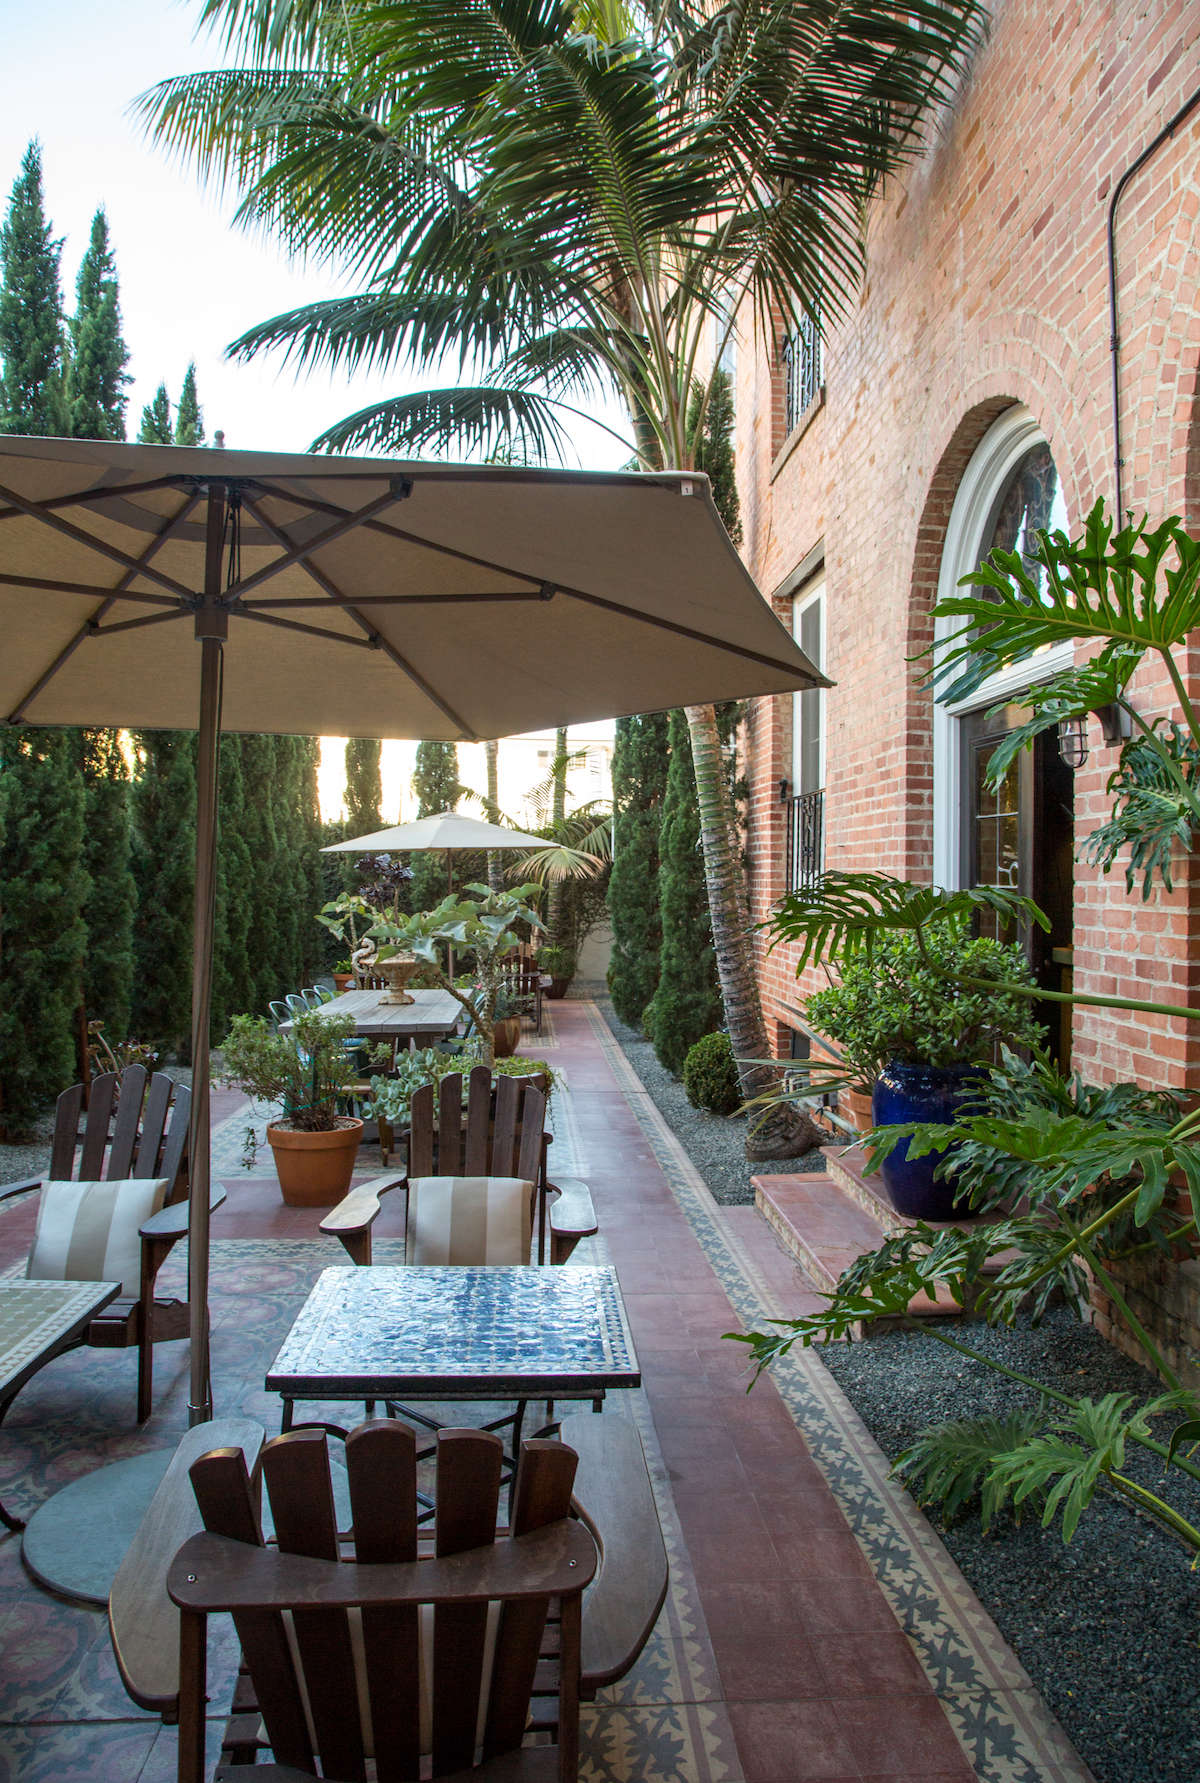 Palm trees and ferns in patio courtyard garden in Santa Monica